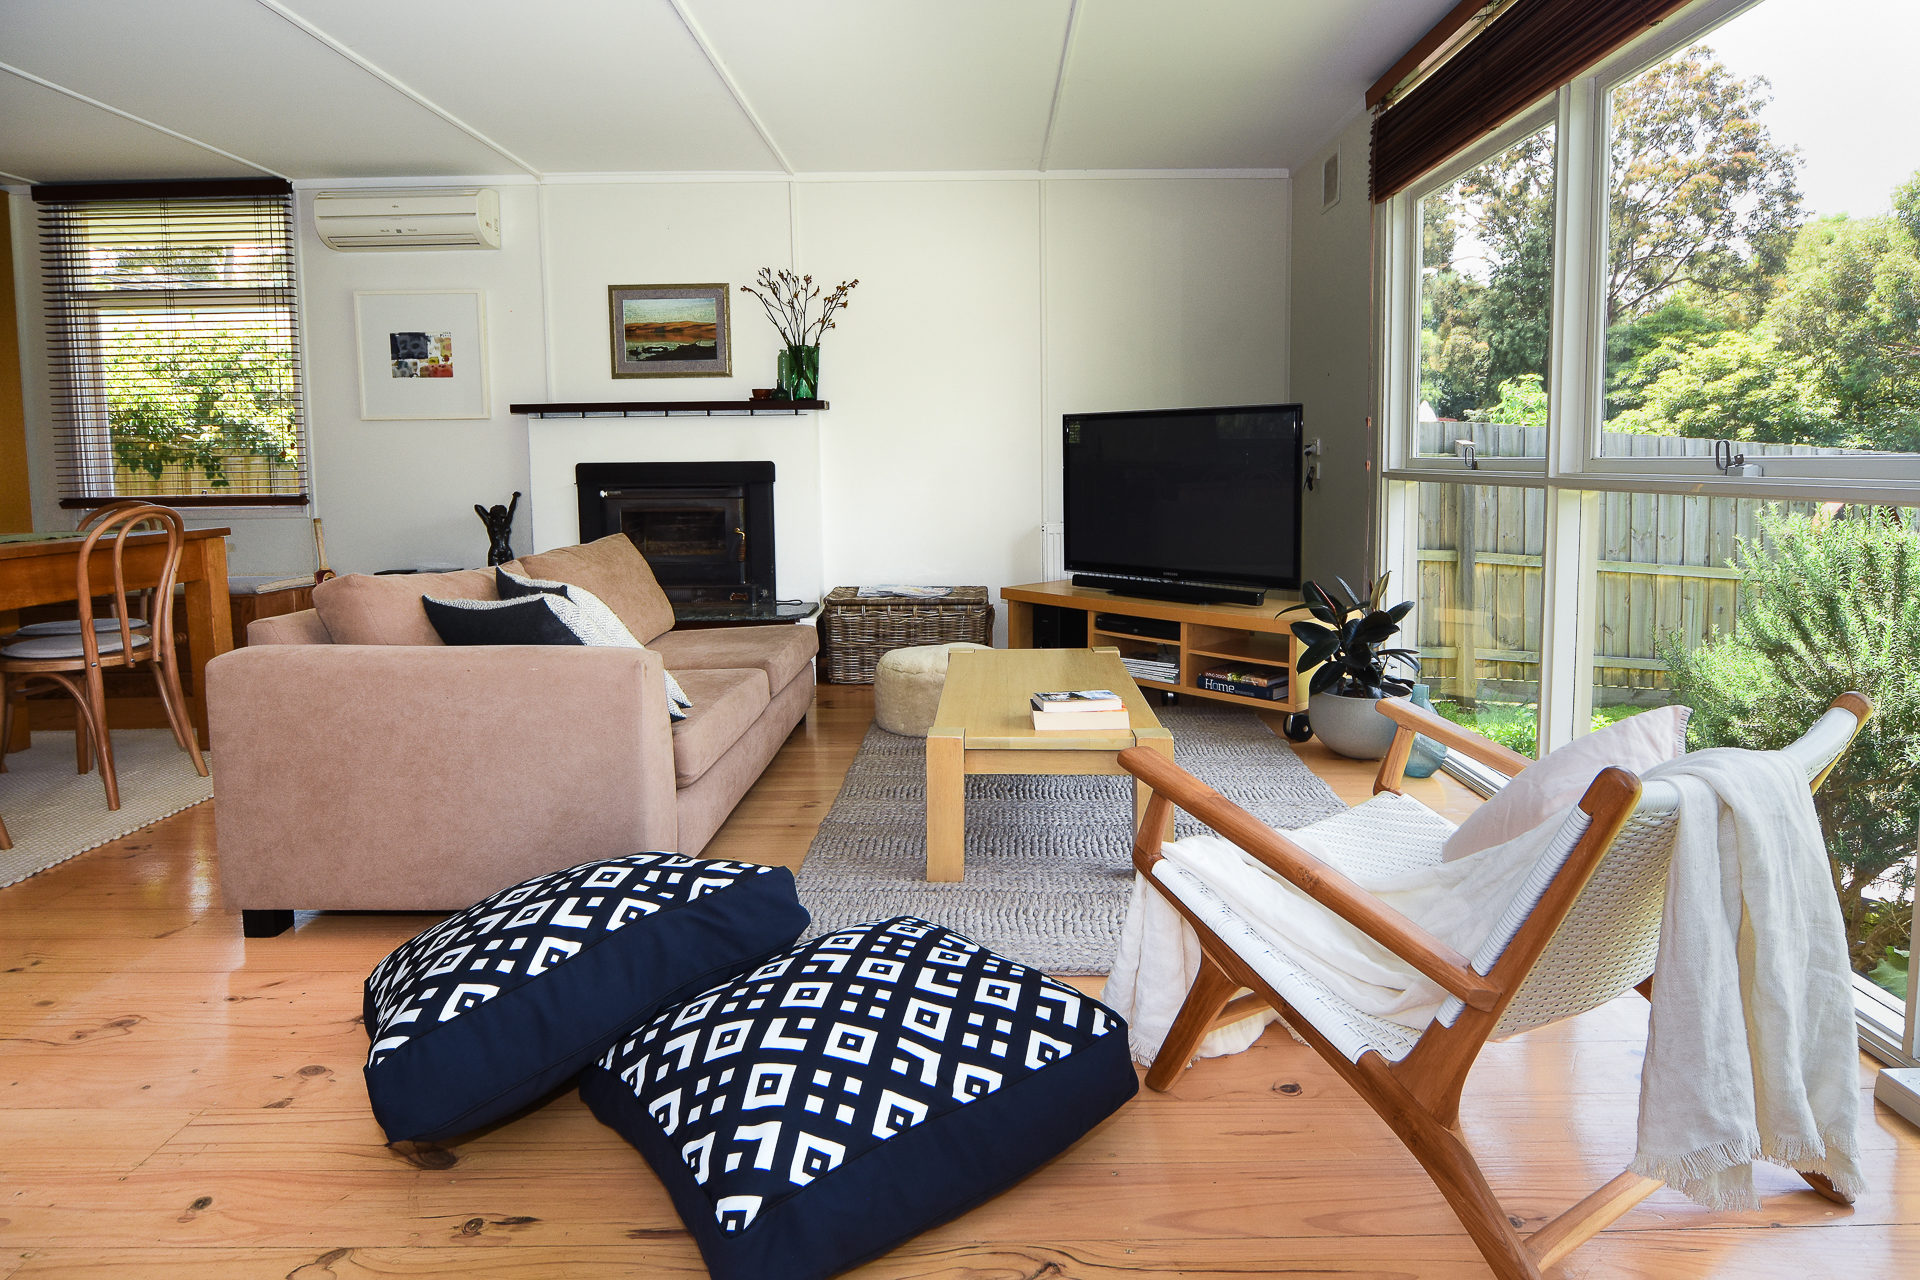 Somers Beach Retreat - Only 200 metres to beach, ideals for couples or small family